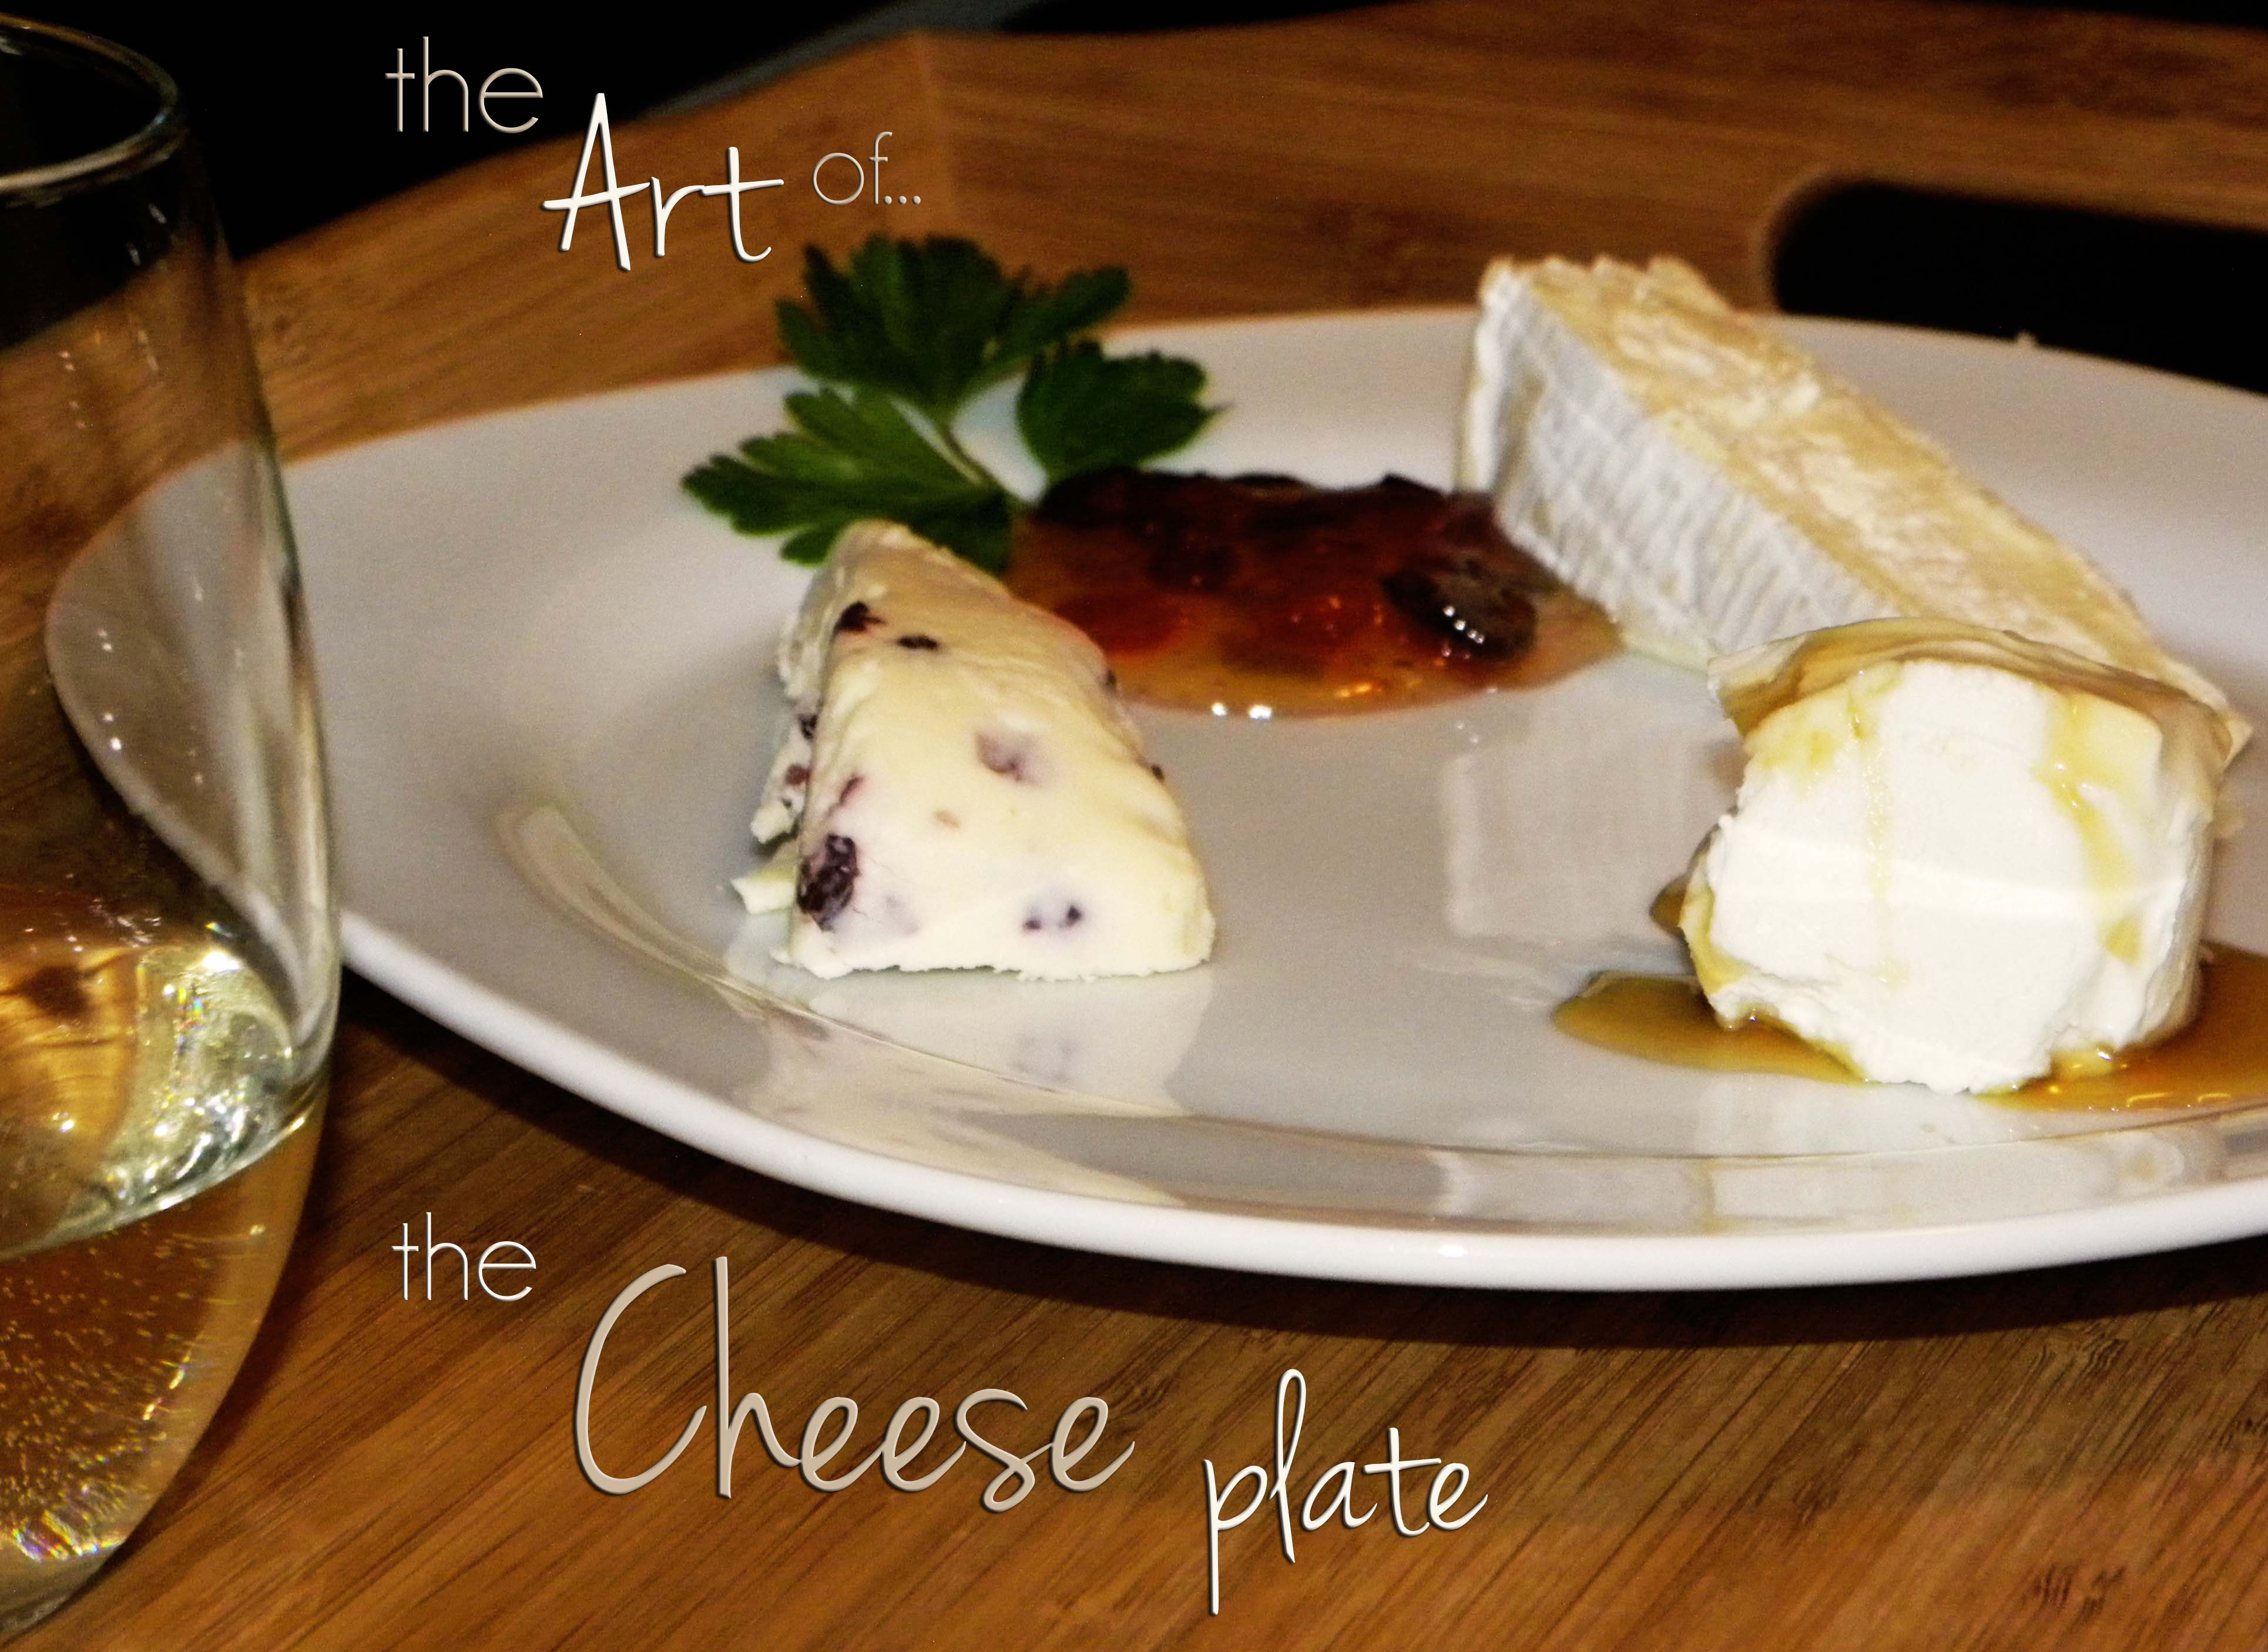 ... especially when thereu0027s both food and drink involved. Solution? My favorite appetizer or evening hors du0027oeurves display the cheese plate. & Holiday Entertaining Q u0026 A: The Art of the Cheese Plate | The ...